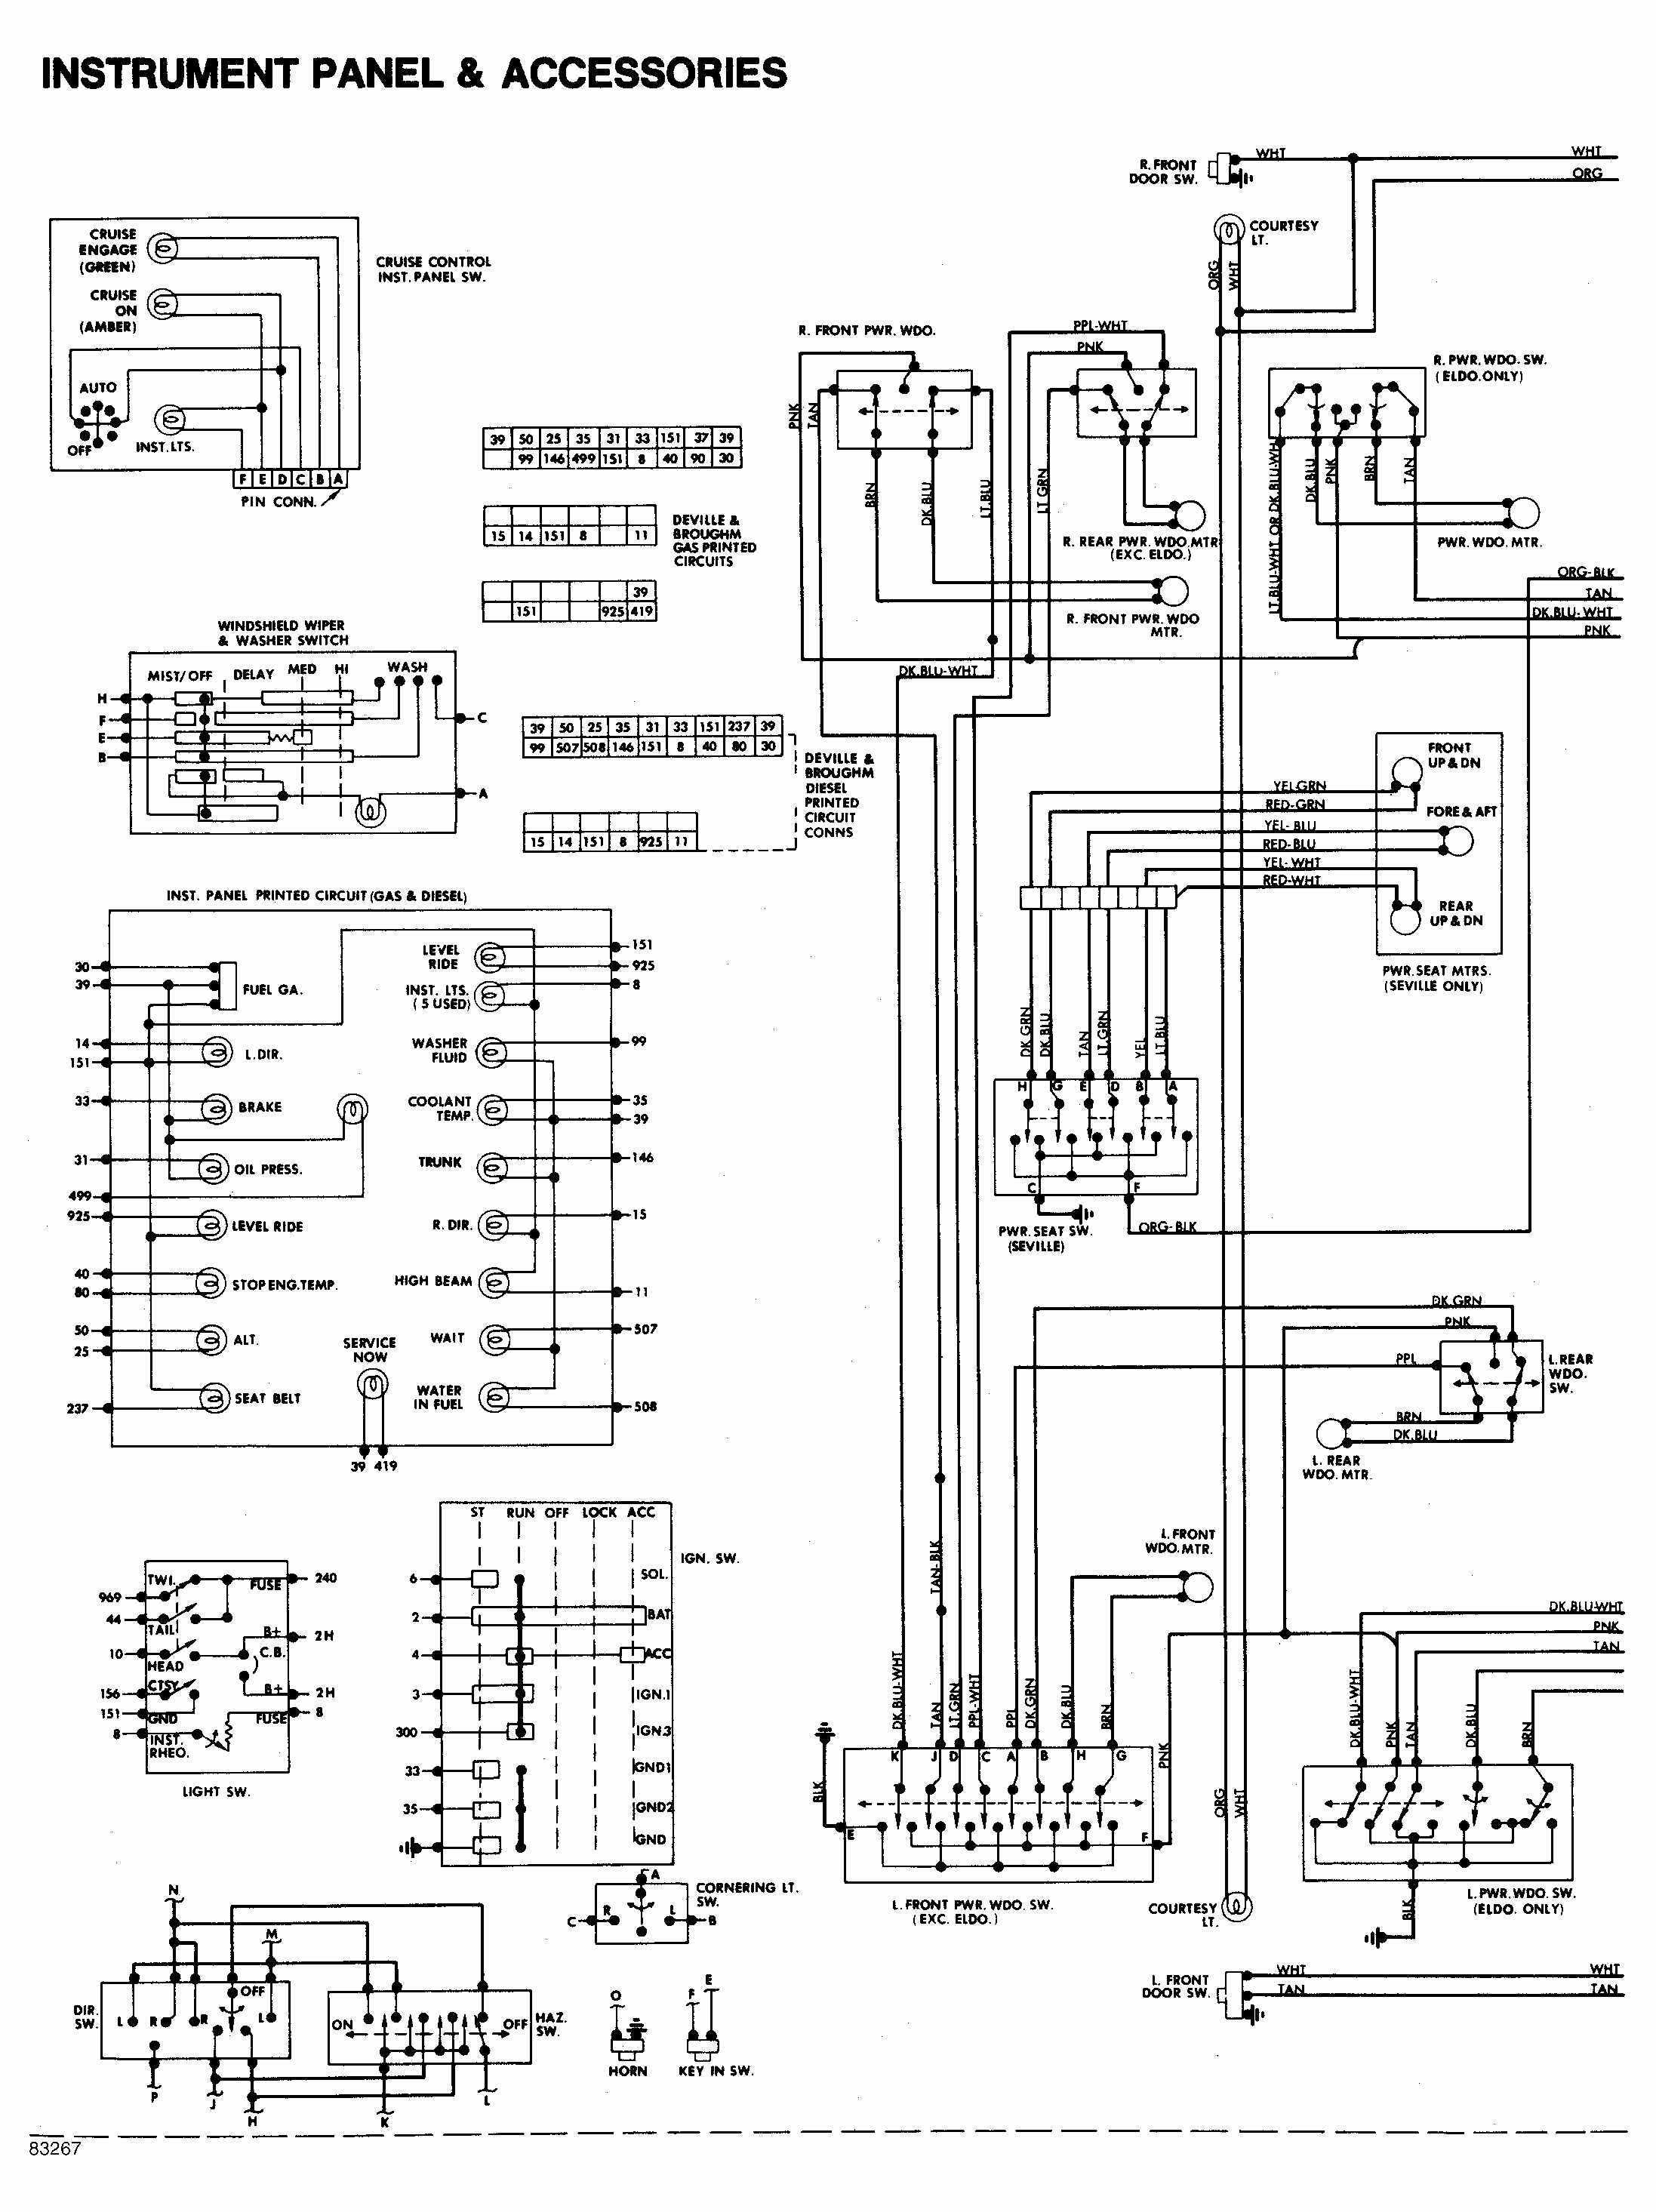 2004 Mercedes C240 Radio Wiring Diagram Furthermore Mercedes C240 Tail